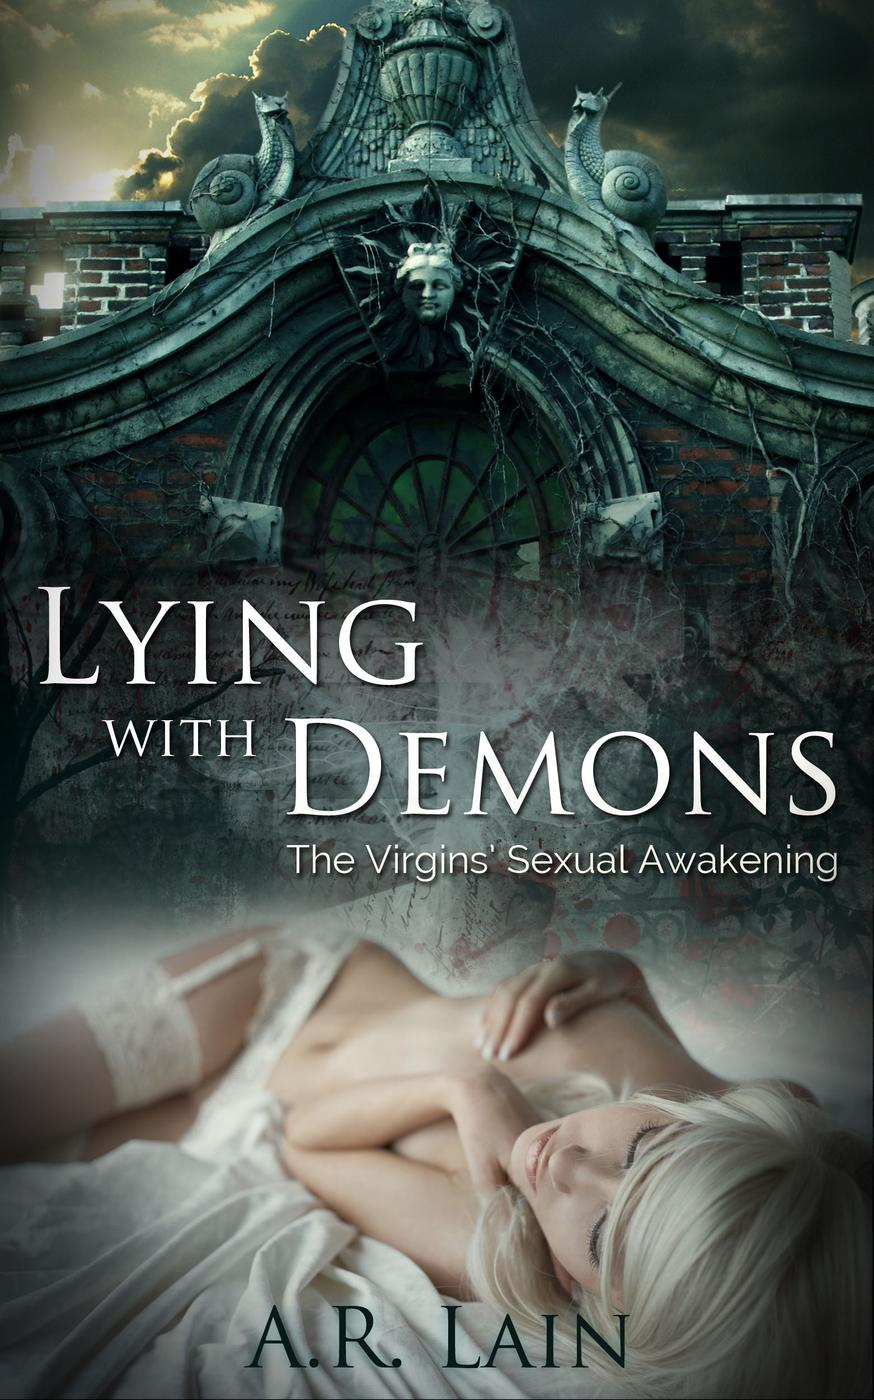 Lying with Demons: The Virgins' Sexual Awakening